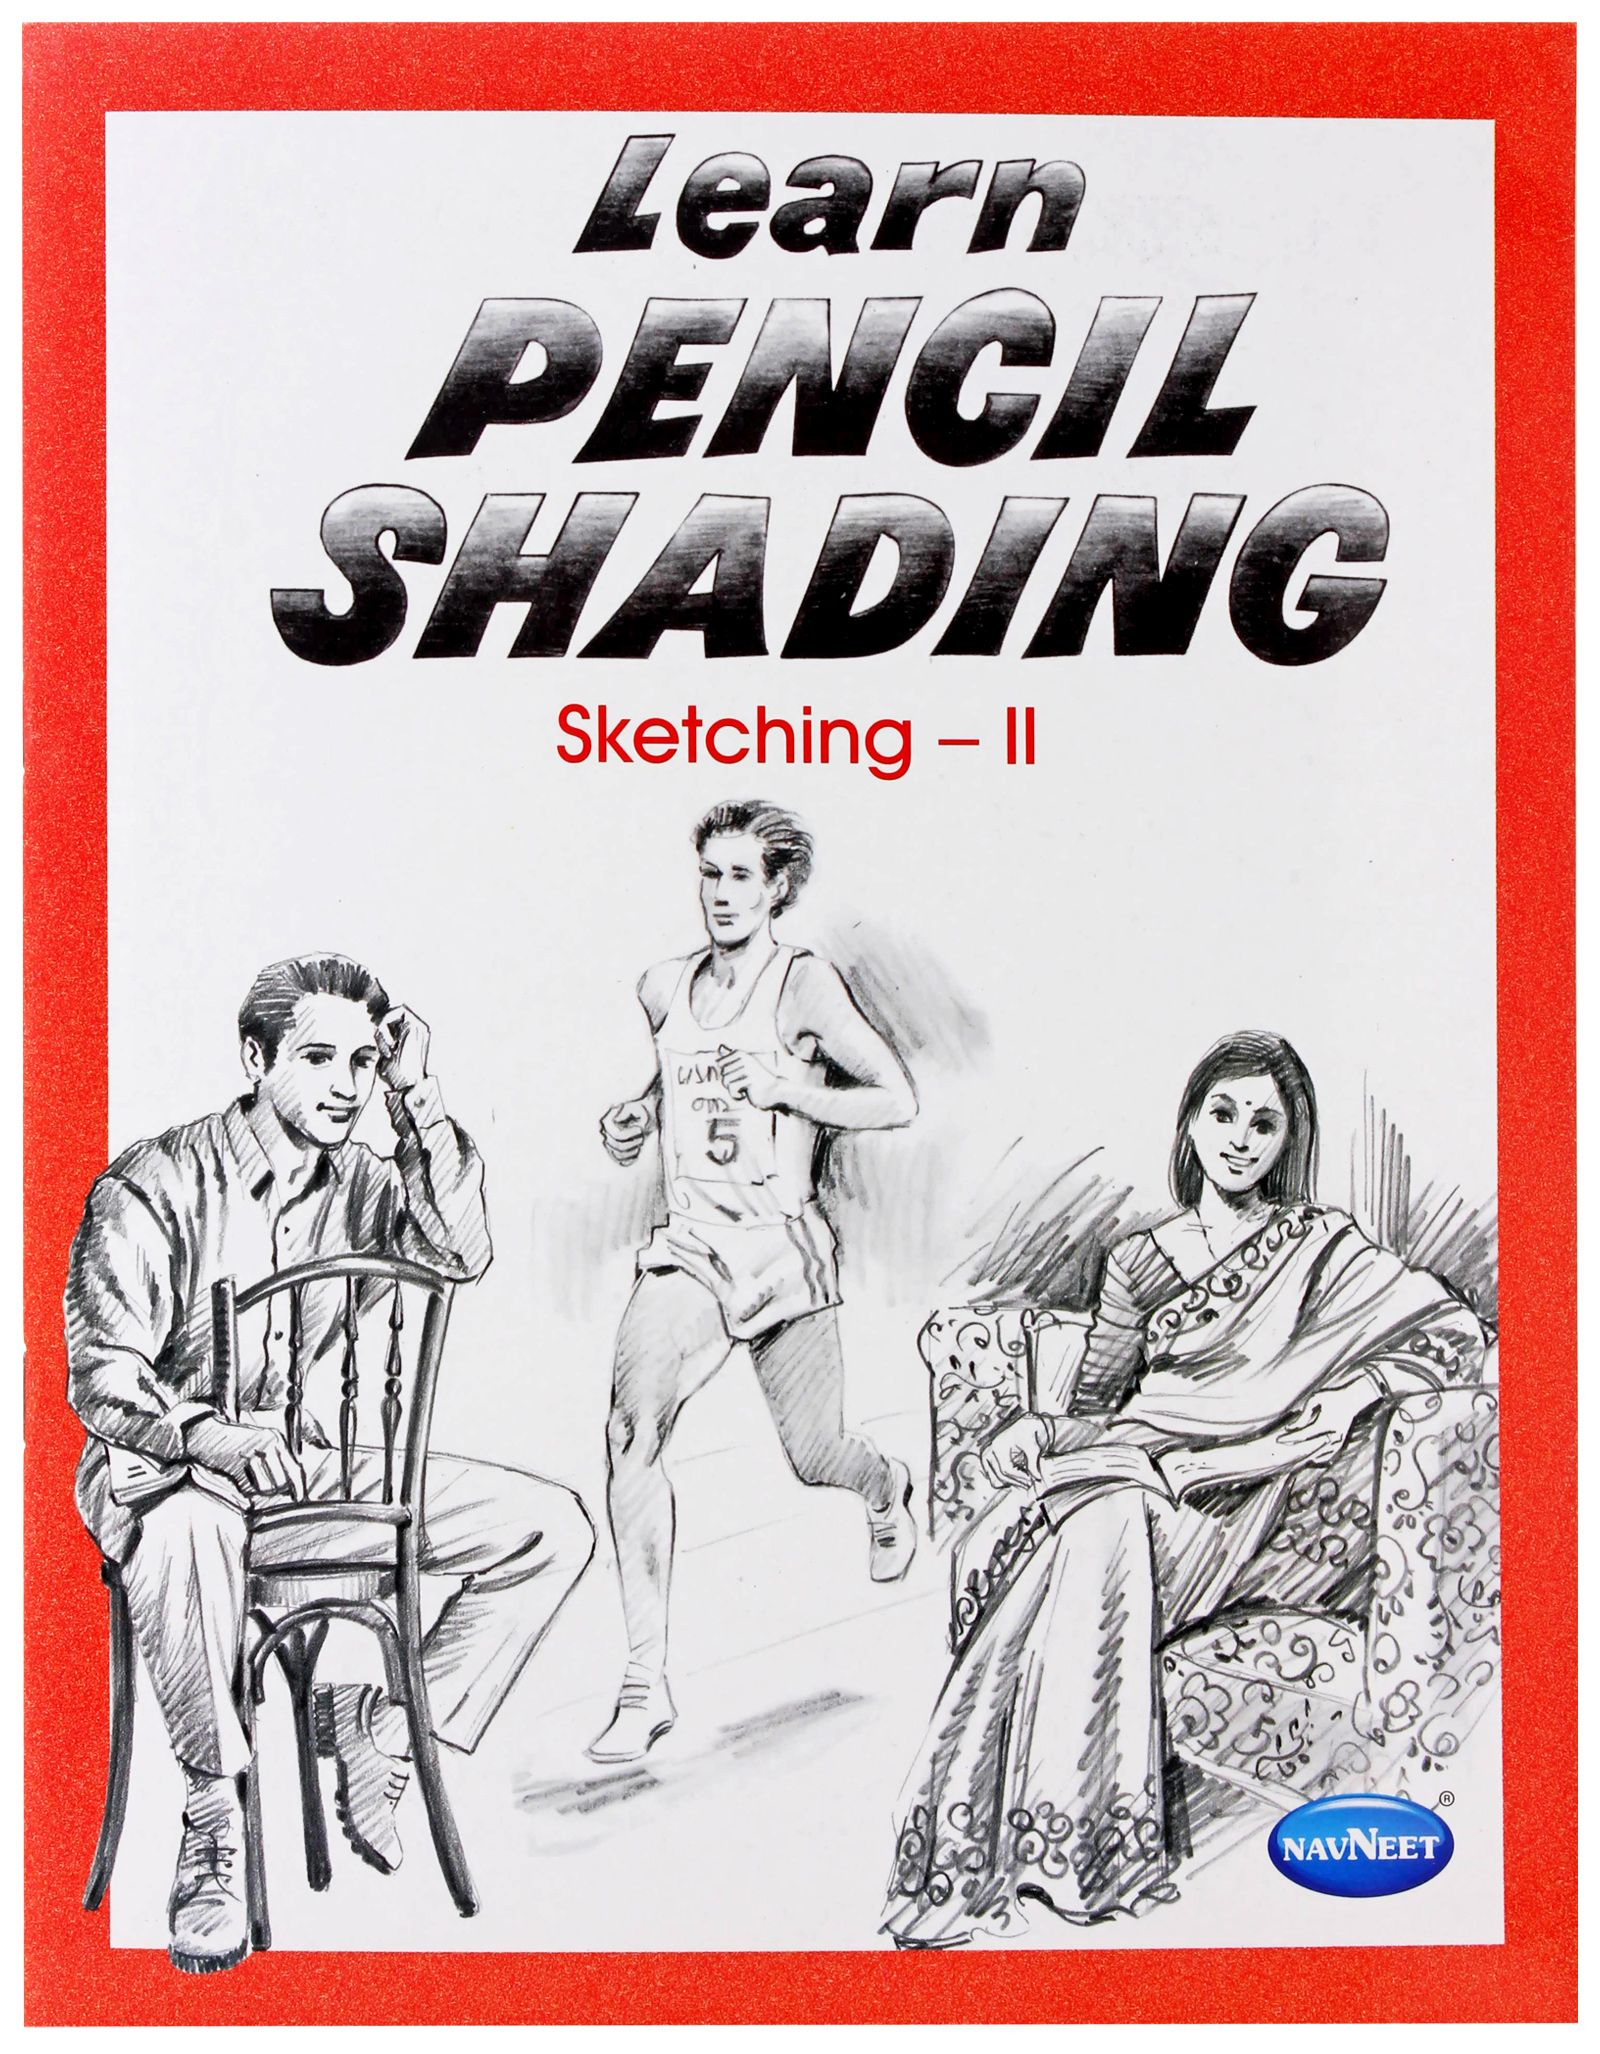 Navneet learn pencil shading sketching book 2